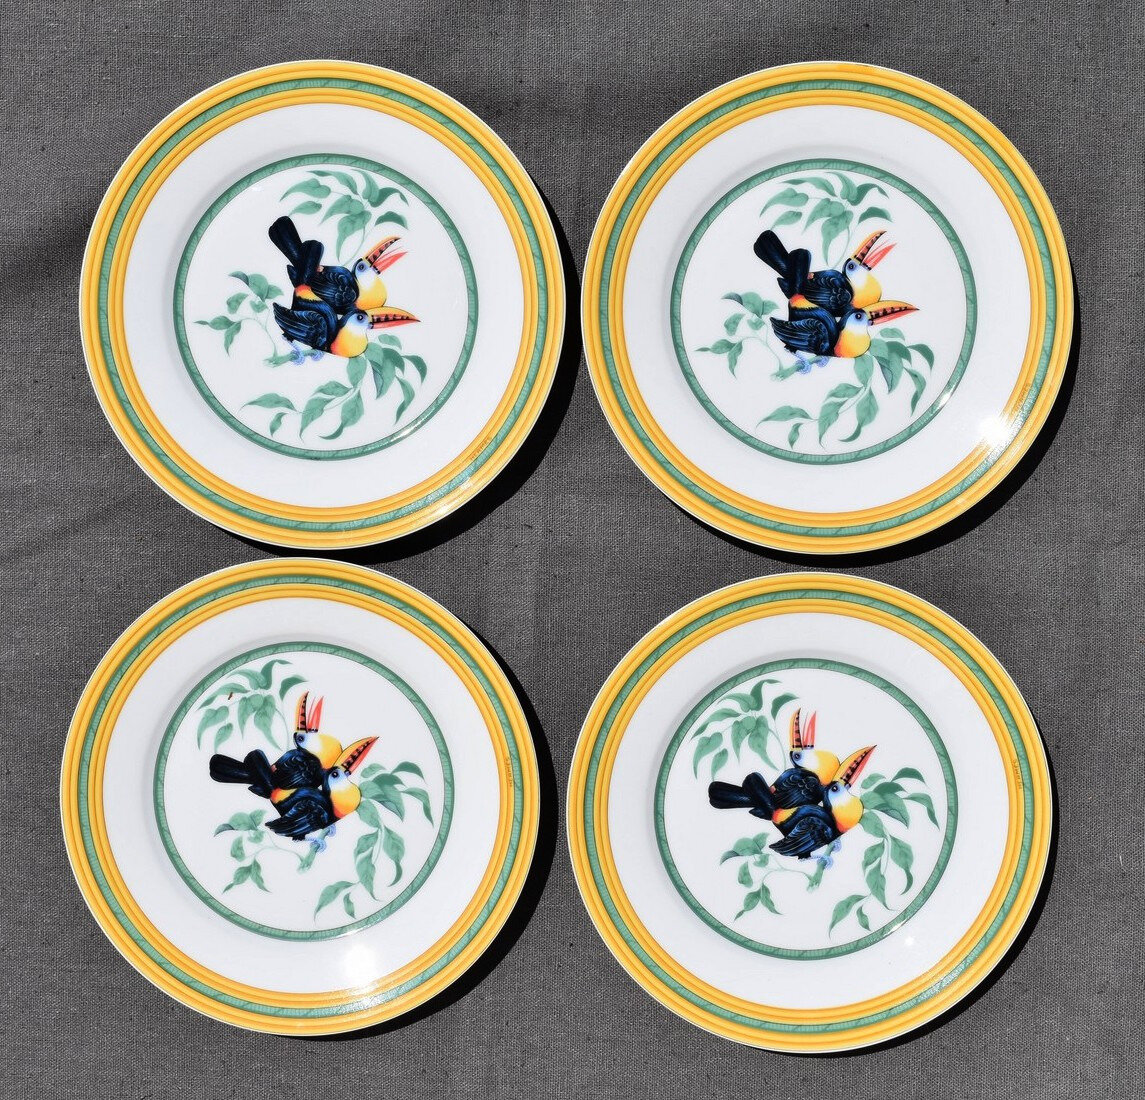 4 ASSIETTES A DESSERT HERMÈS TOUCAN EN PORCELAINE PARIS FRANCE